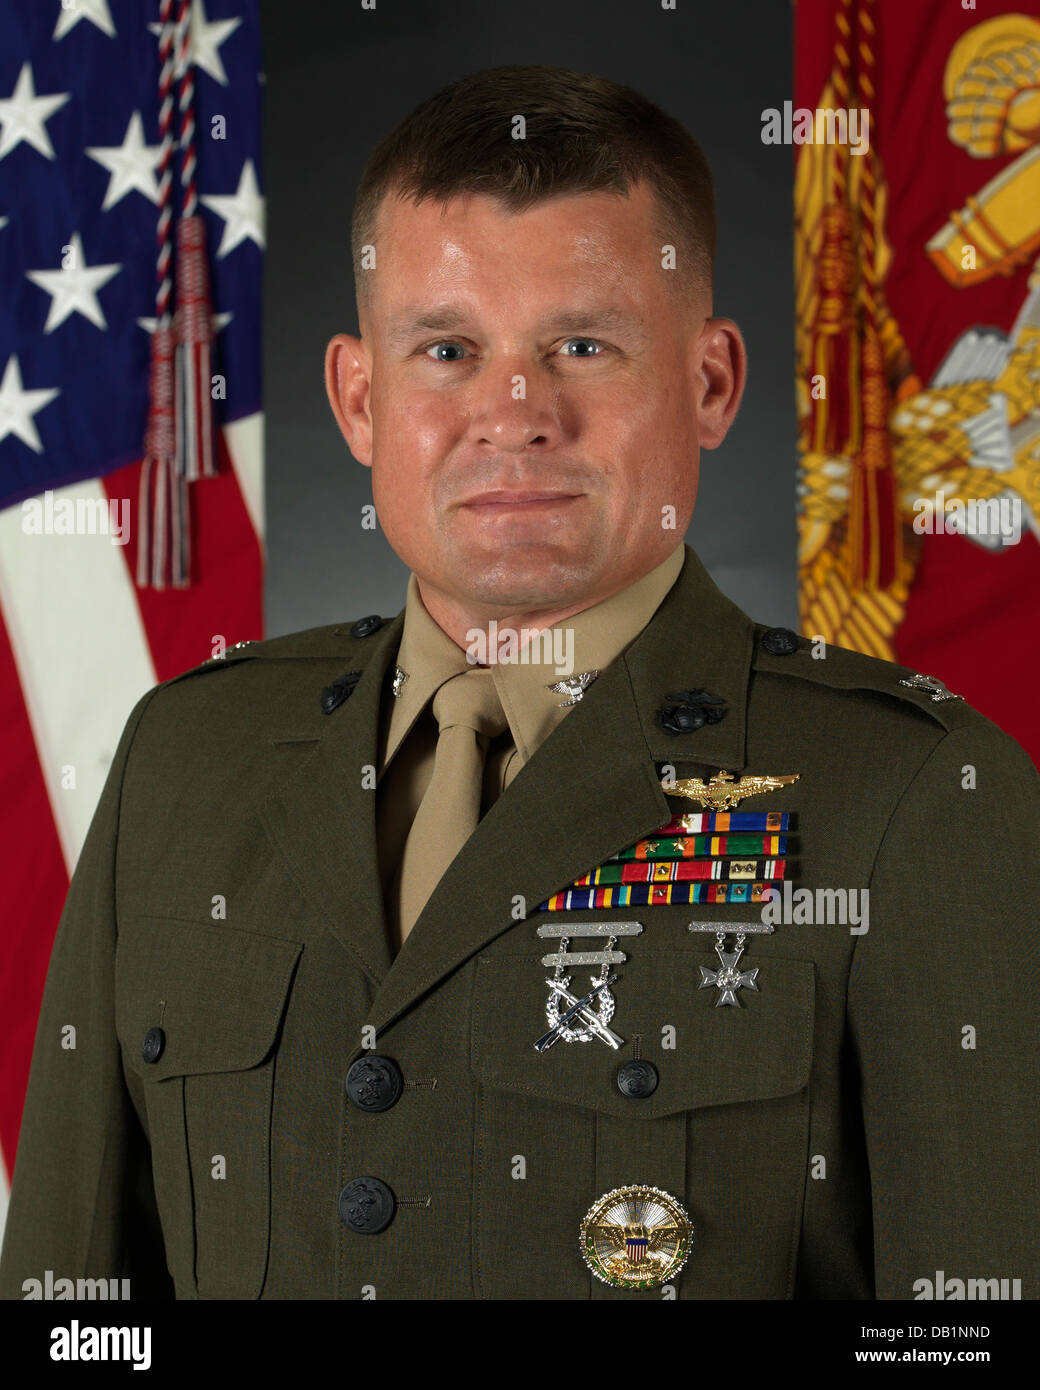 U.S. Marine Corps Col. Terence J. Dunne Official portrait ...